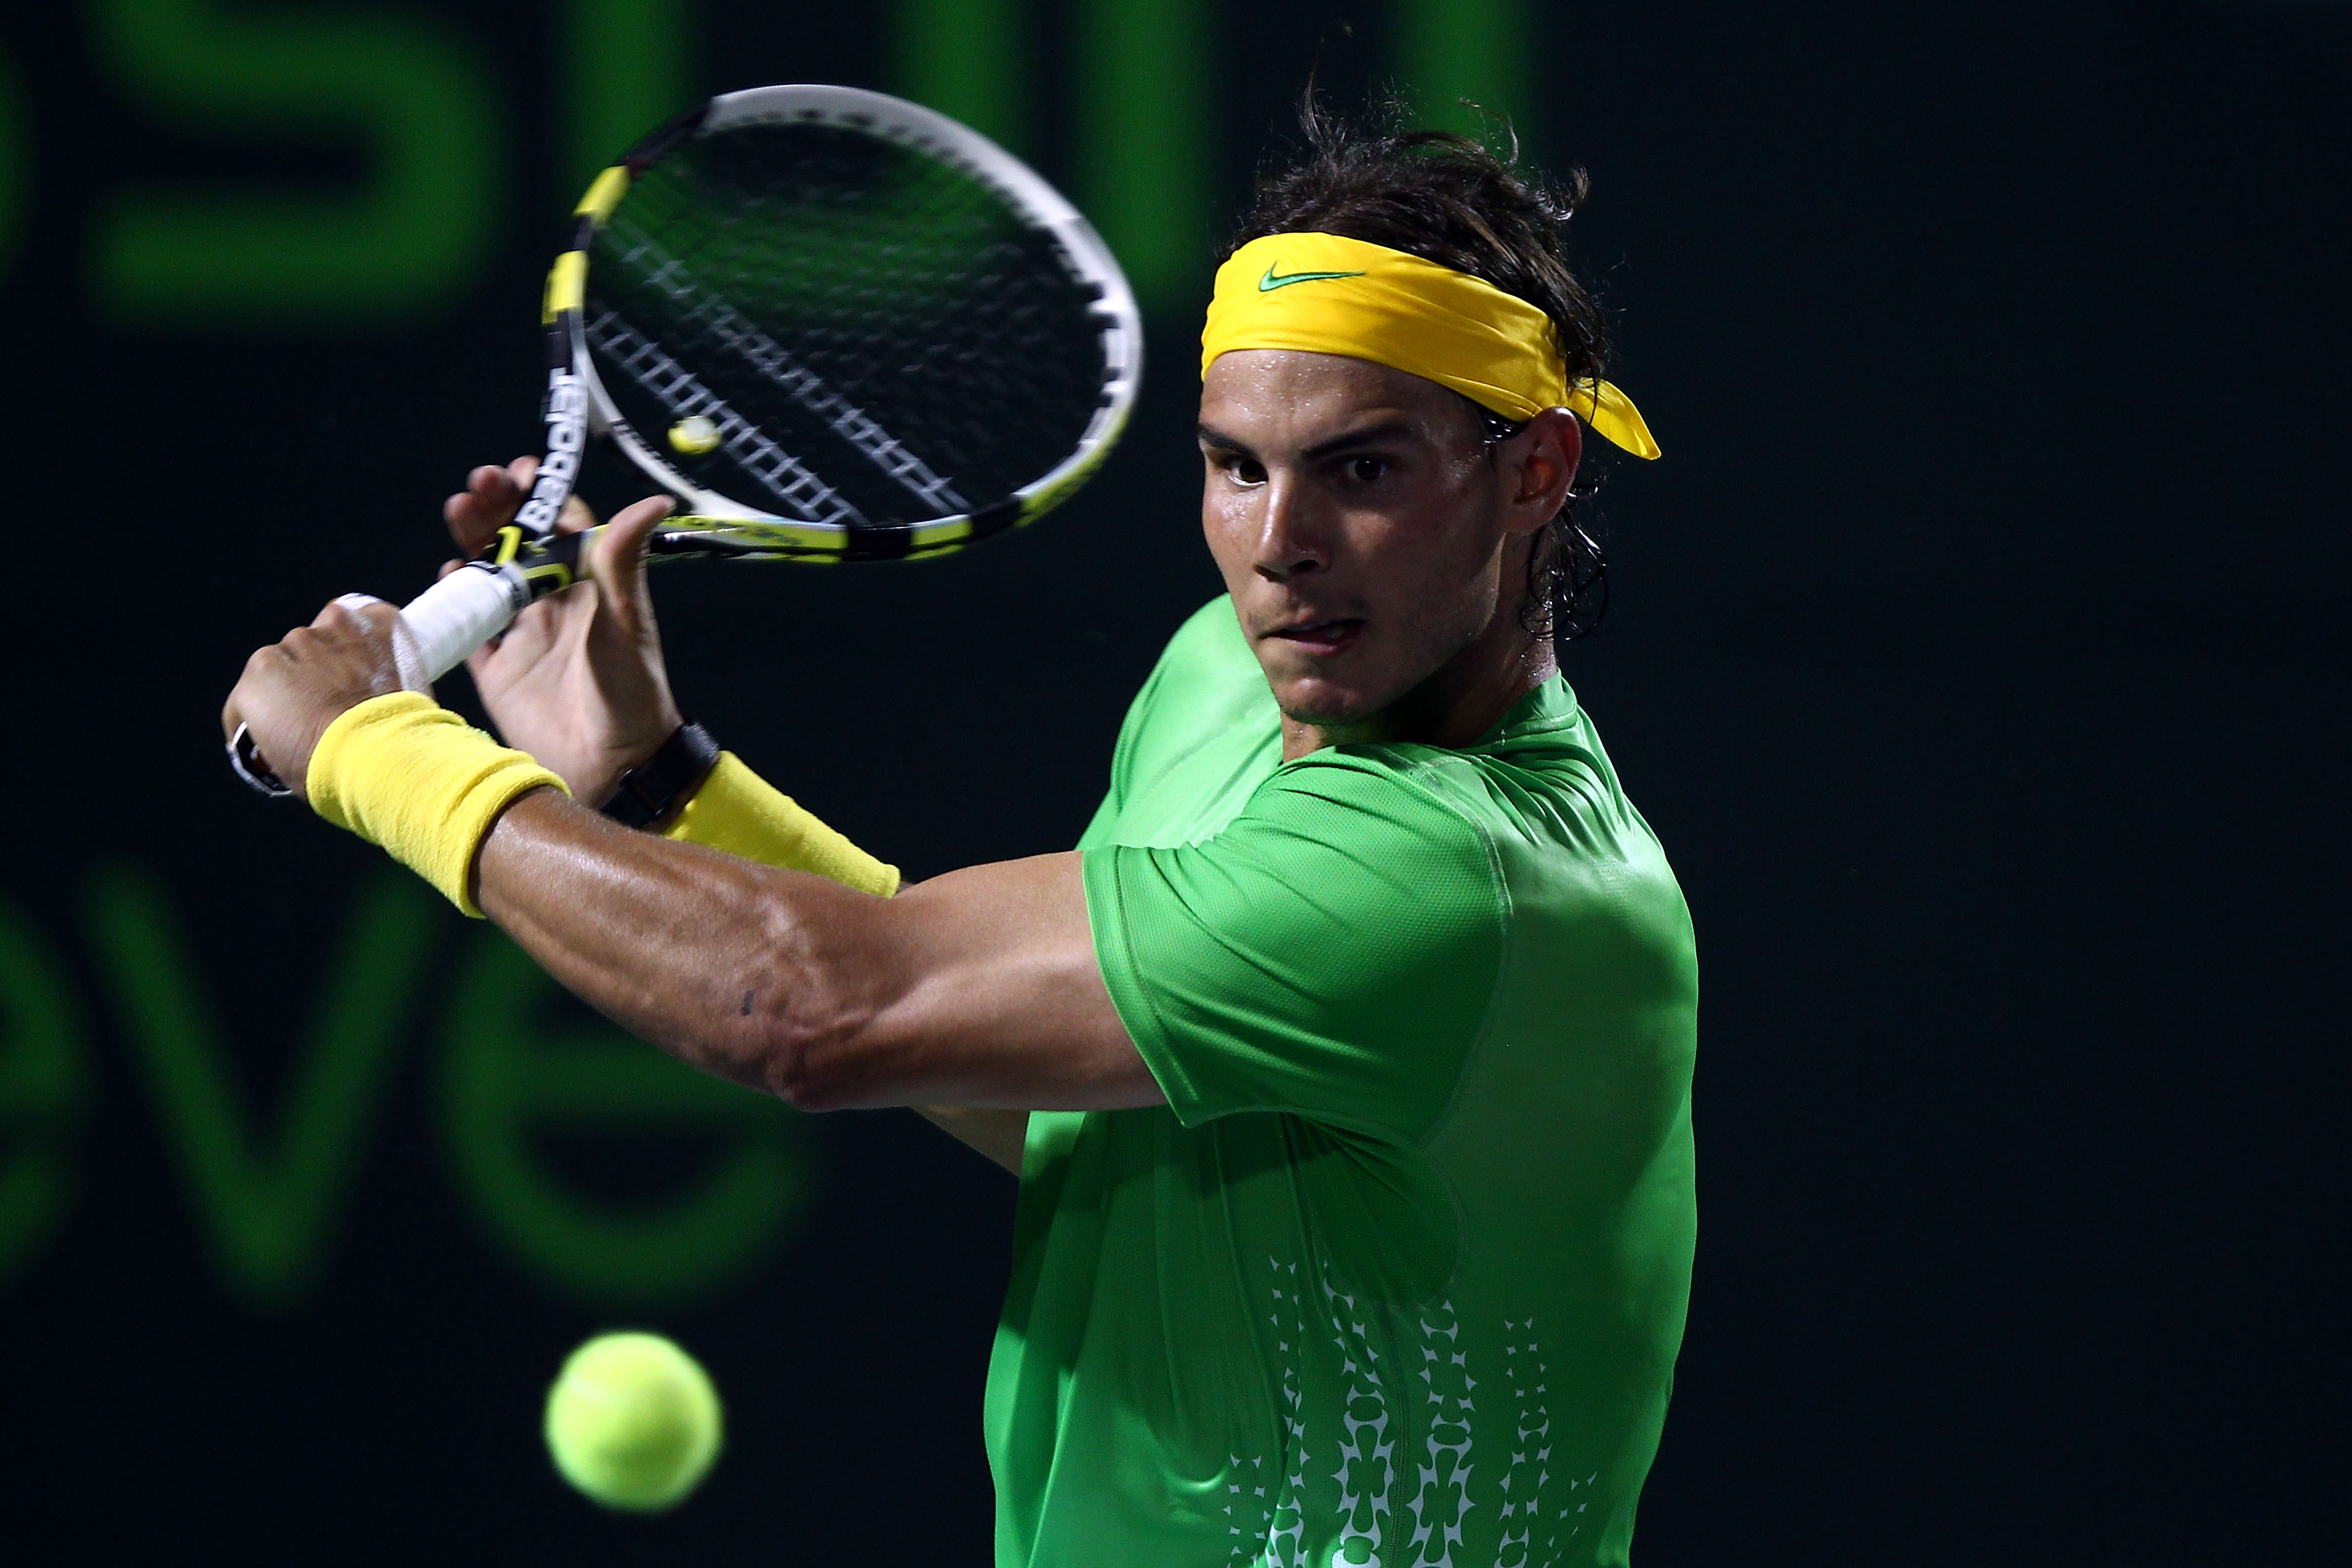 KEY BISCAYNE, FL - MARCH 26:  Rafael Nadal of Spain hits a return shot against Kei Nishikori of Japan during the Sony Ericsson Open at Crandon Park Tennis Center on March 26, 2011 in Key Biscayne, Florida.  (Photo by Clive Brunskill/Getty Images)